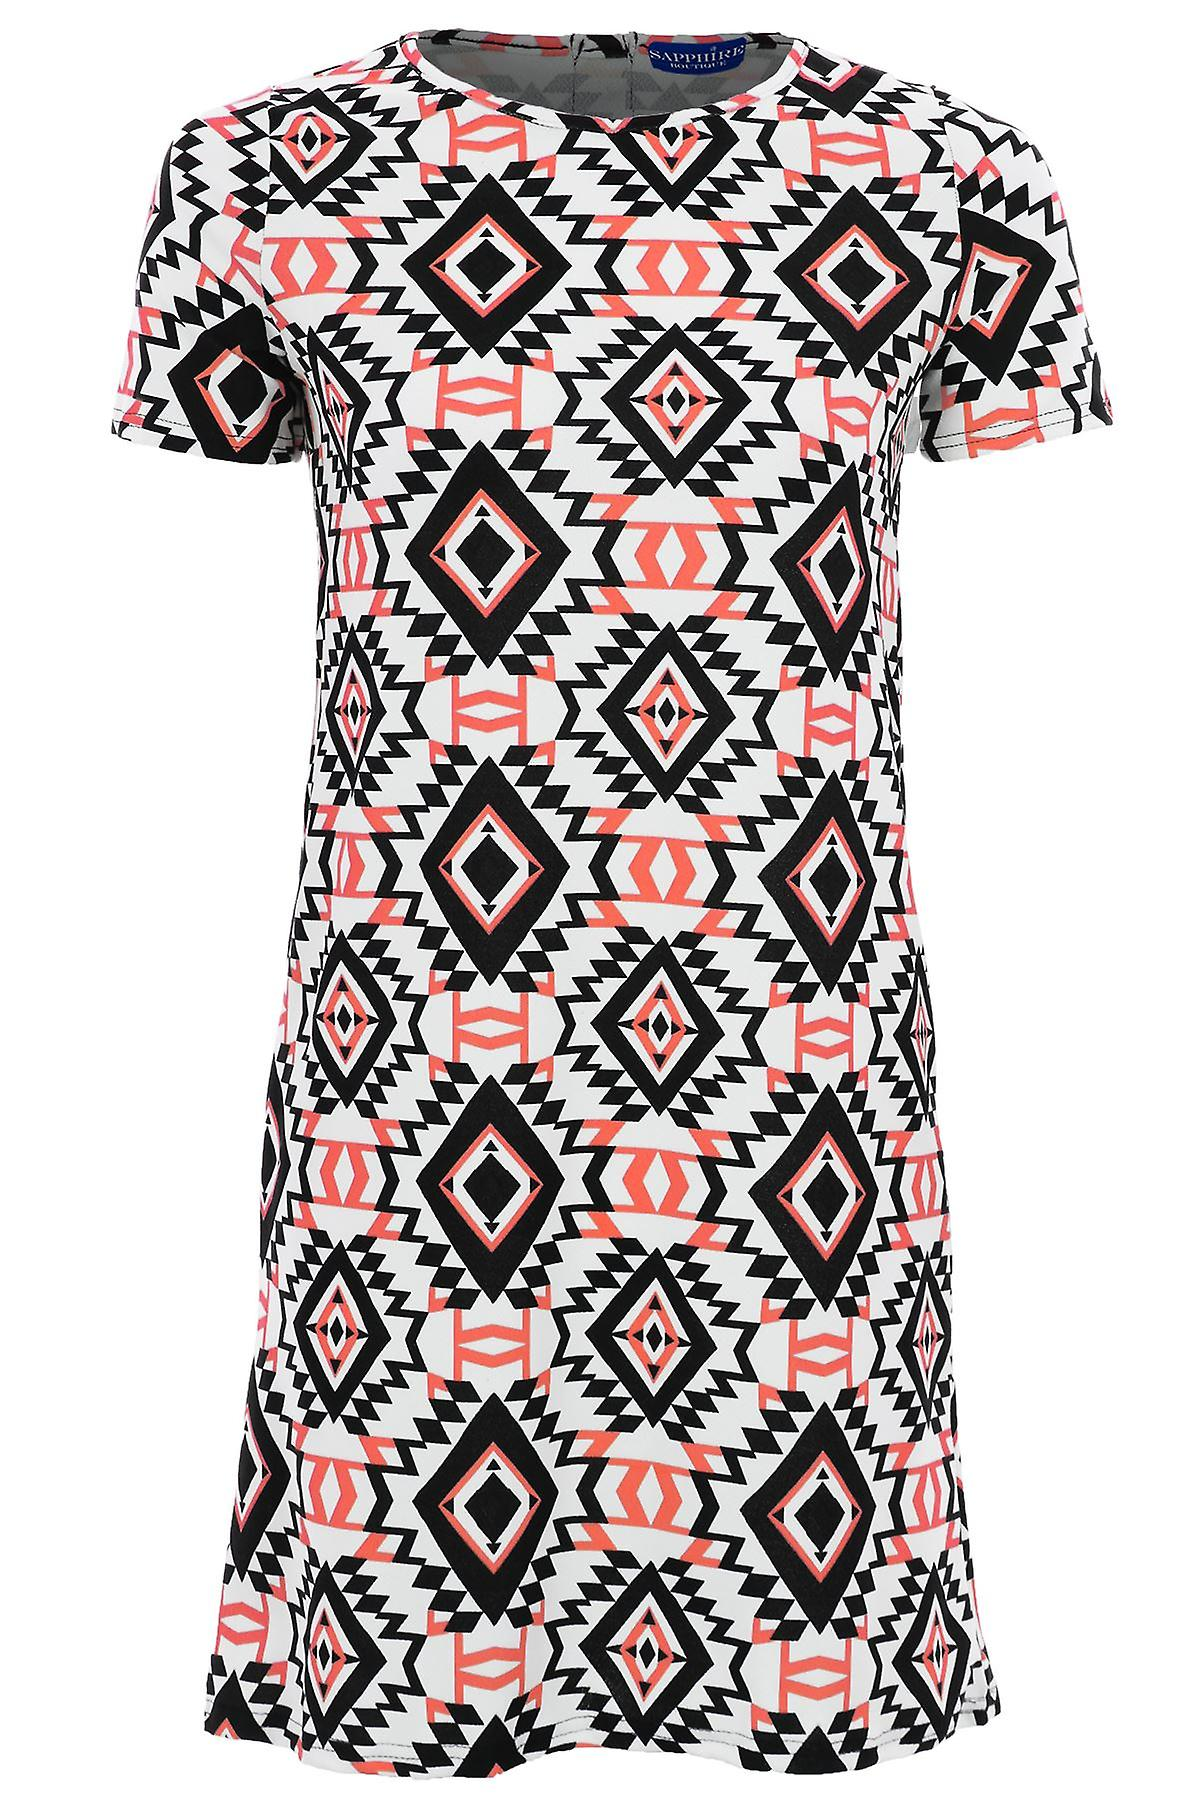 Ladies Celeb Neon Luminous Coral Green Aztec Print Short Shift Women's Dress